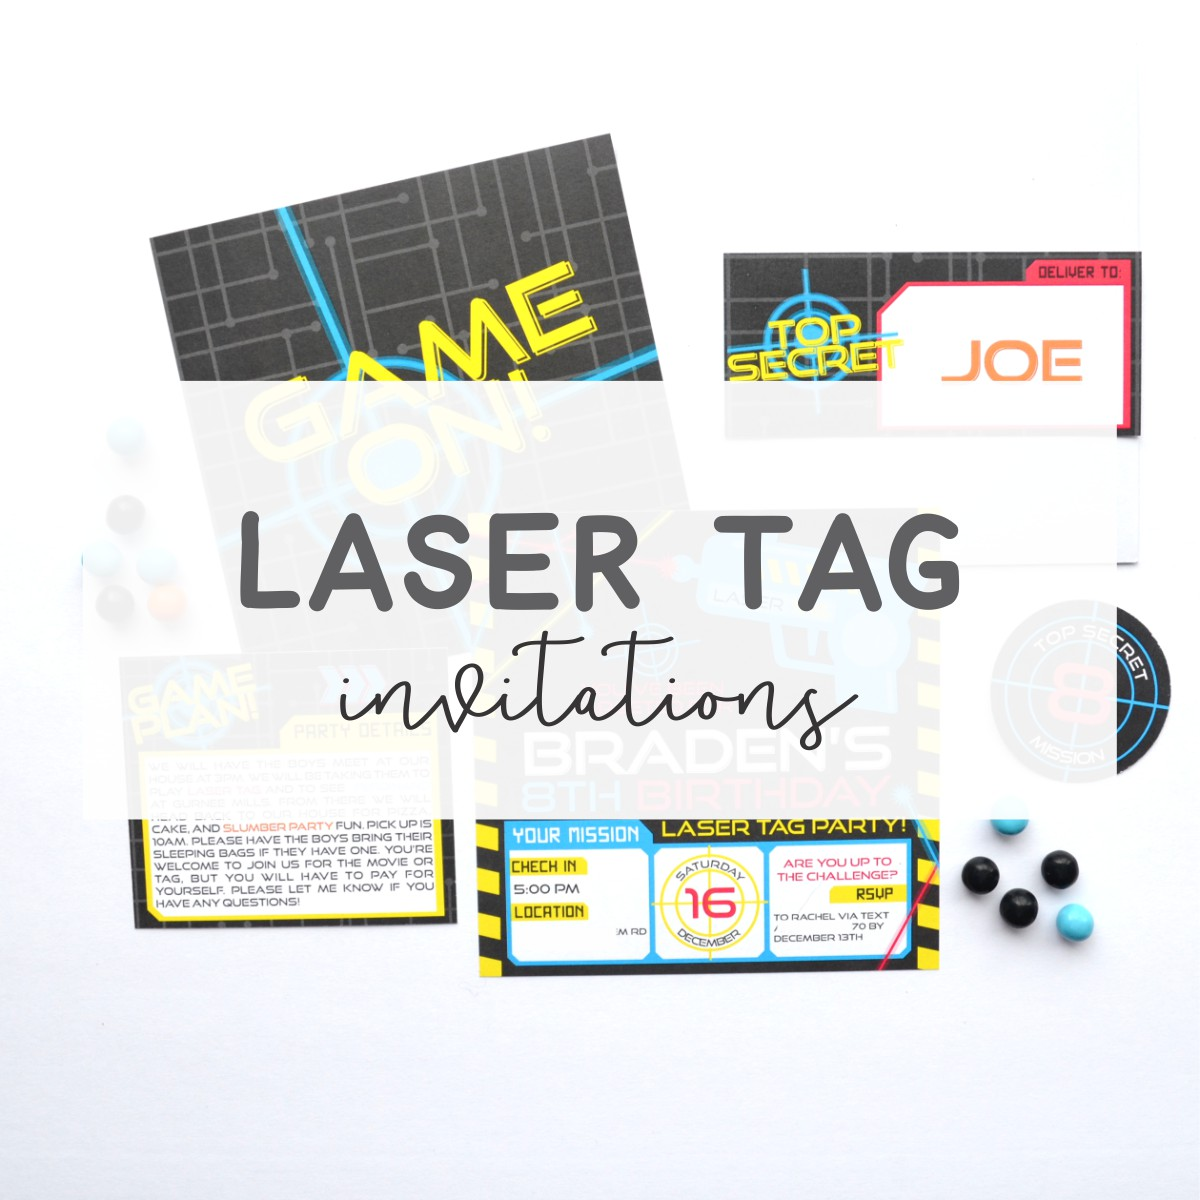 Laser Tag Invitations